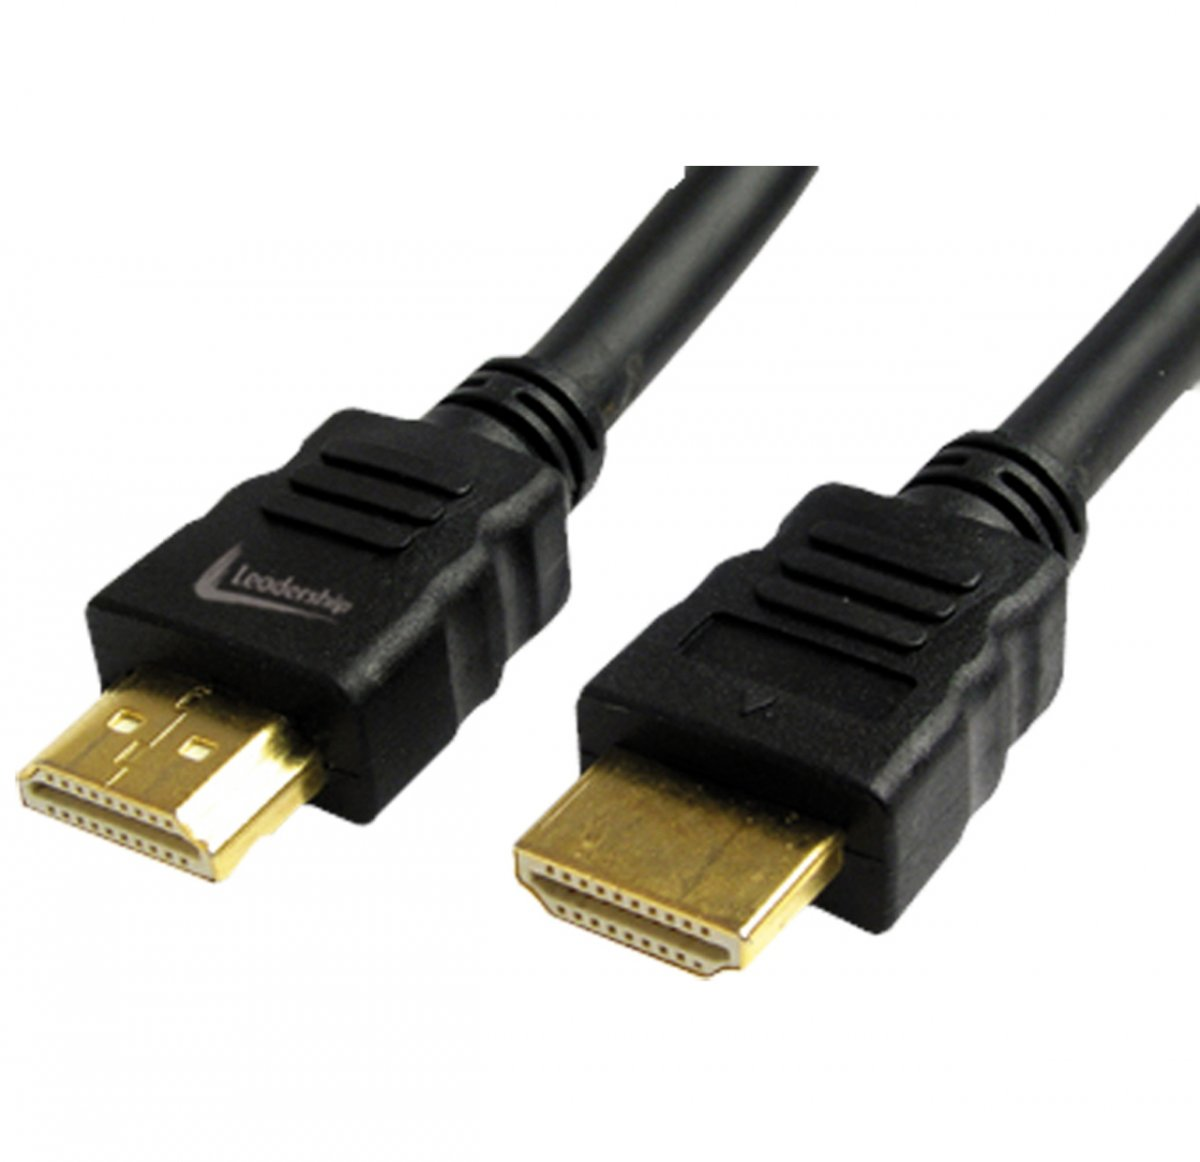 Cabo Hdmi Gold 1.4 - 4K HDR 3D 19P 1.8M LeaderShip (Blister)